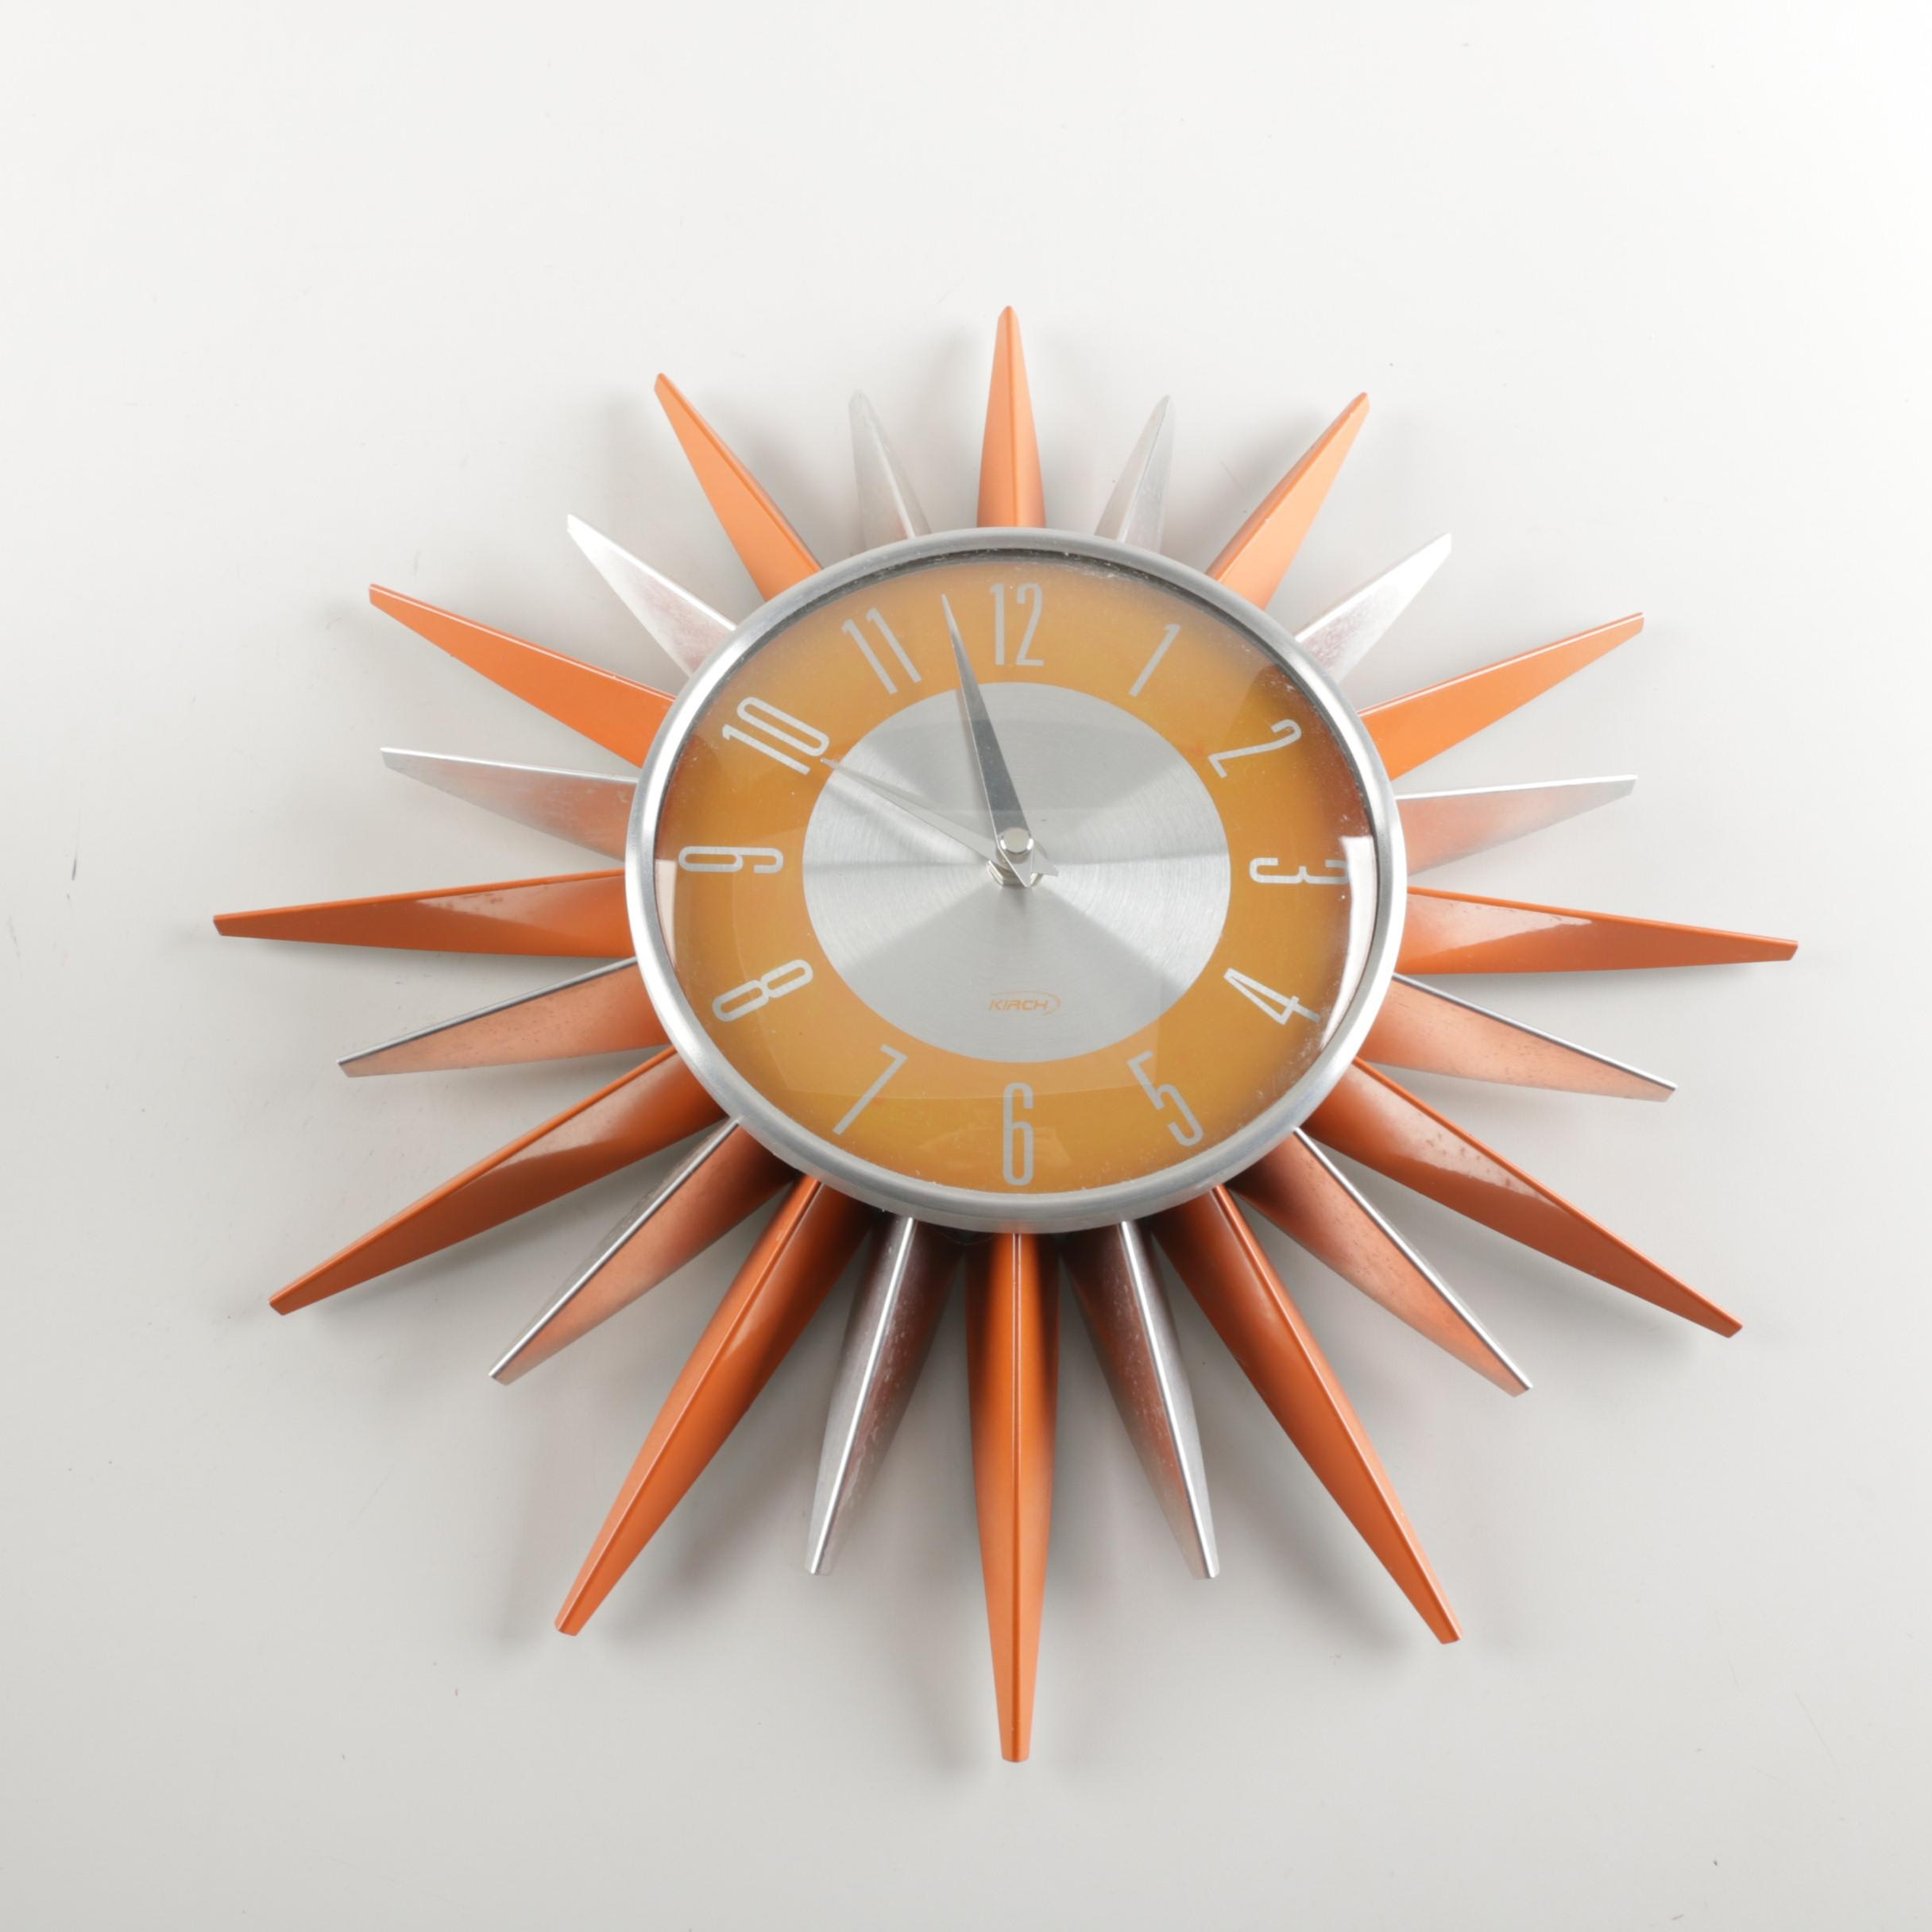 Kirch Reproduction Atomic Sun Ray Wall Clock